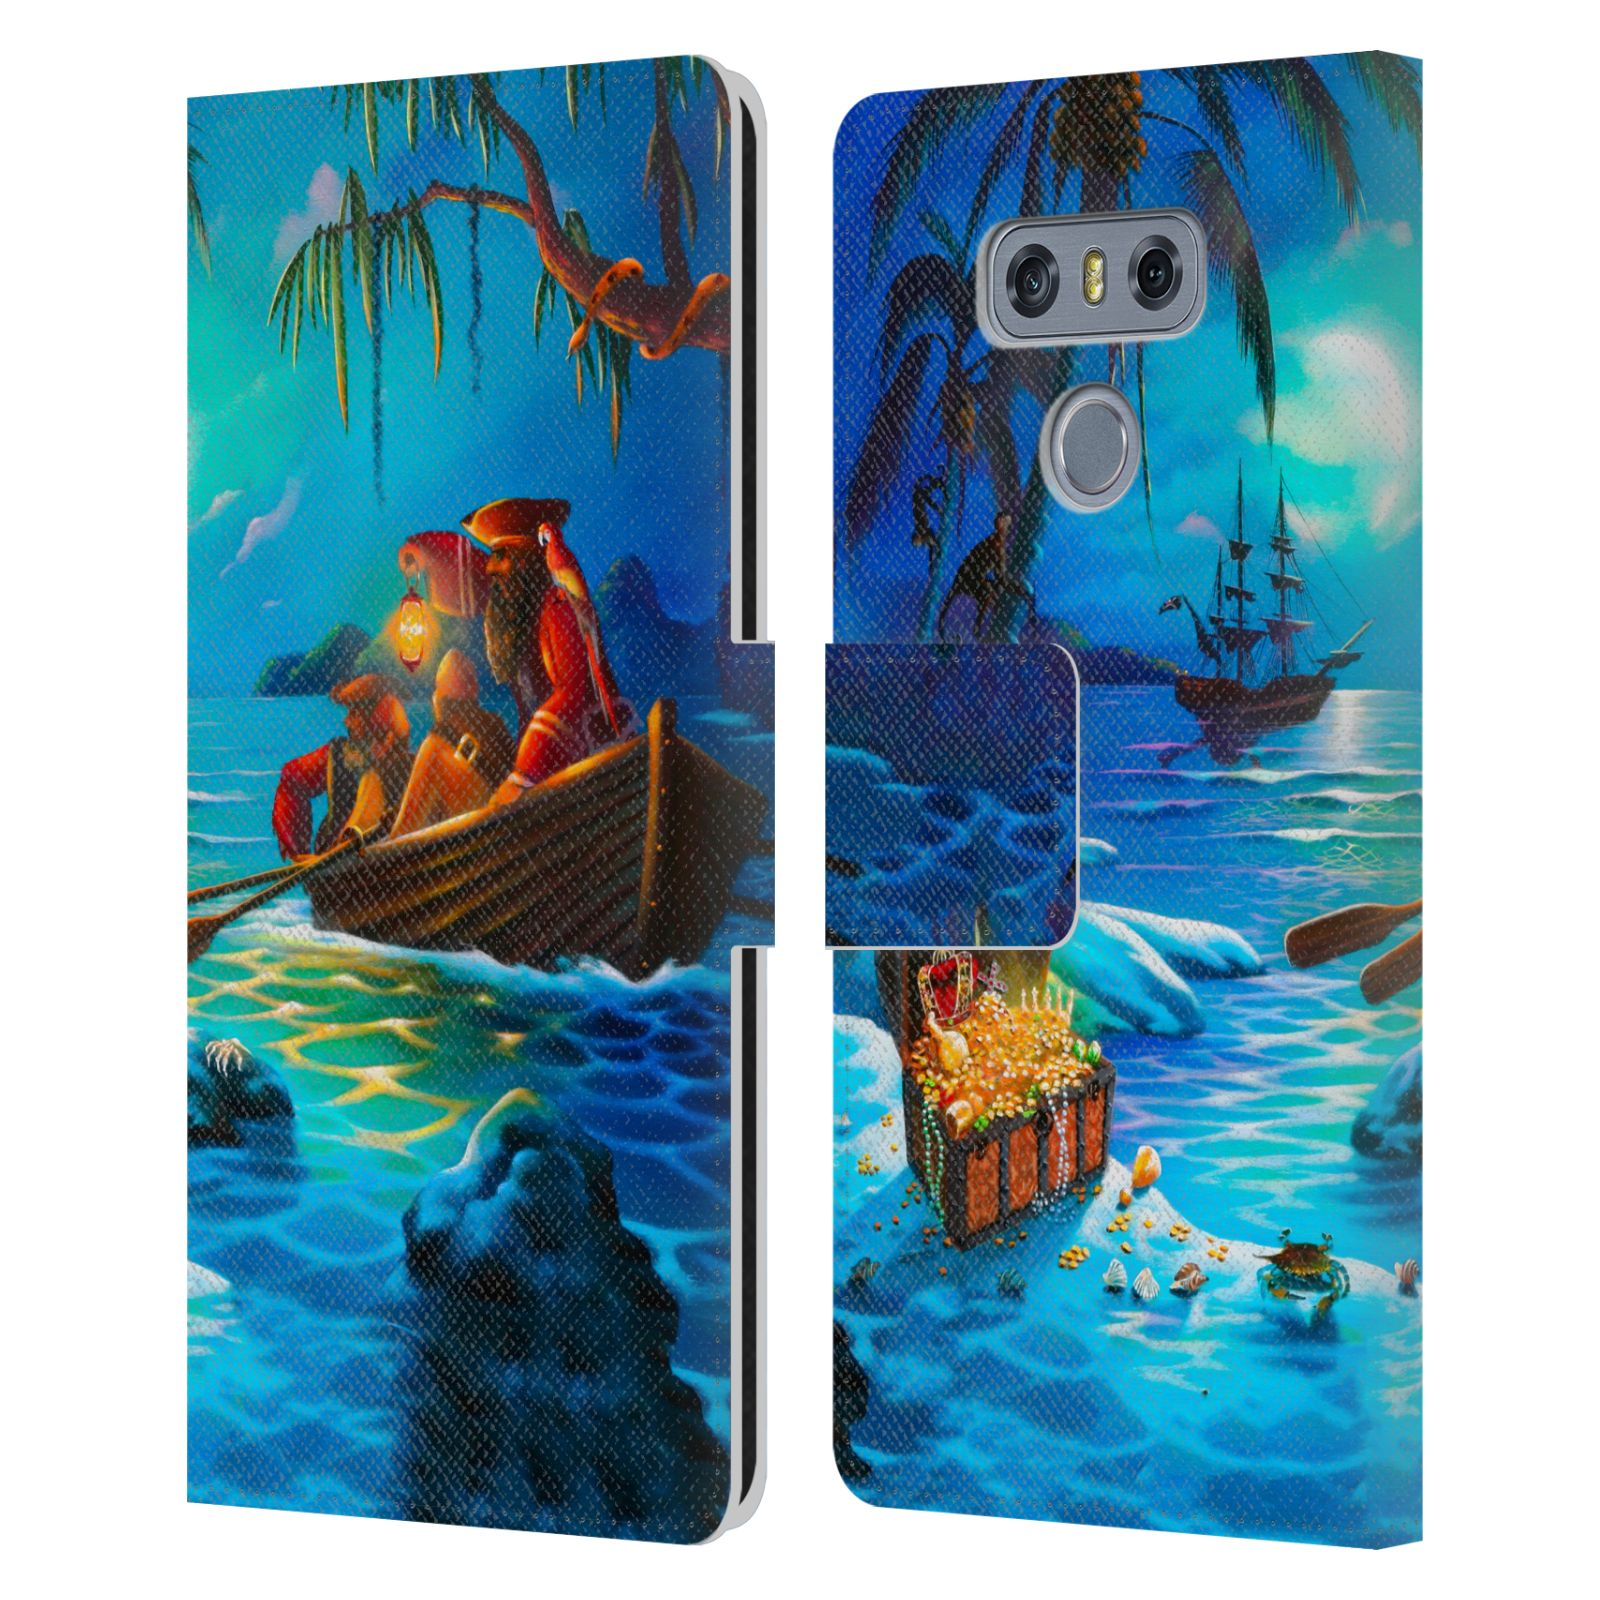 OFFICIAL-GENO-PEOPLES-ART-HOLIDAY-LEATHER-BOOK-WALLET-CASE-COVER-FOR-LG-PHONES-1